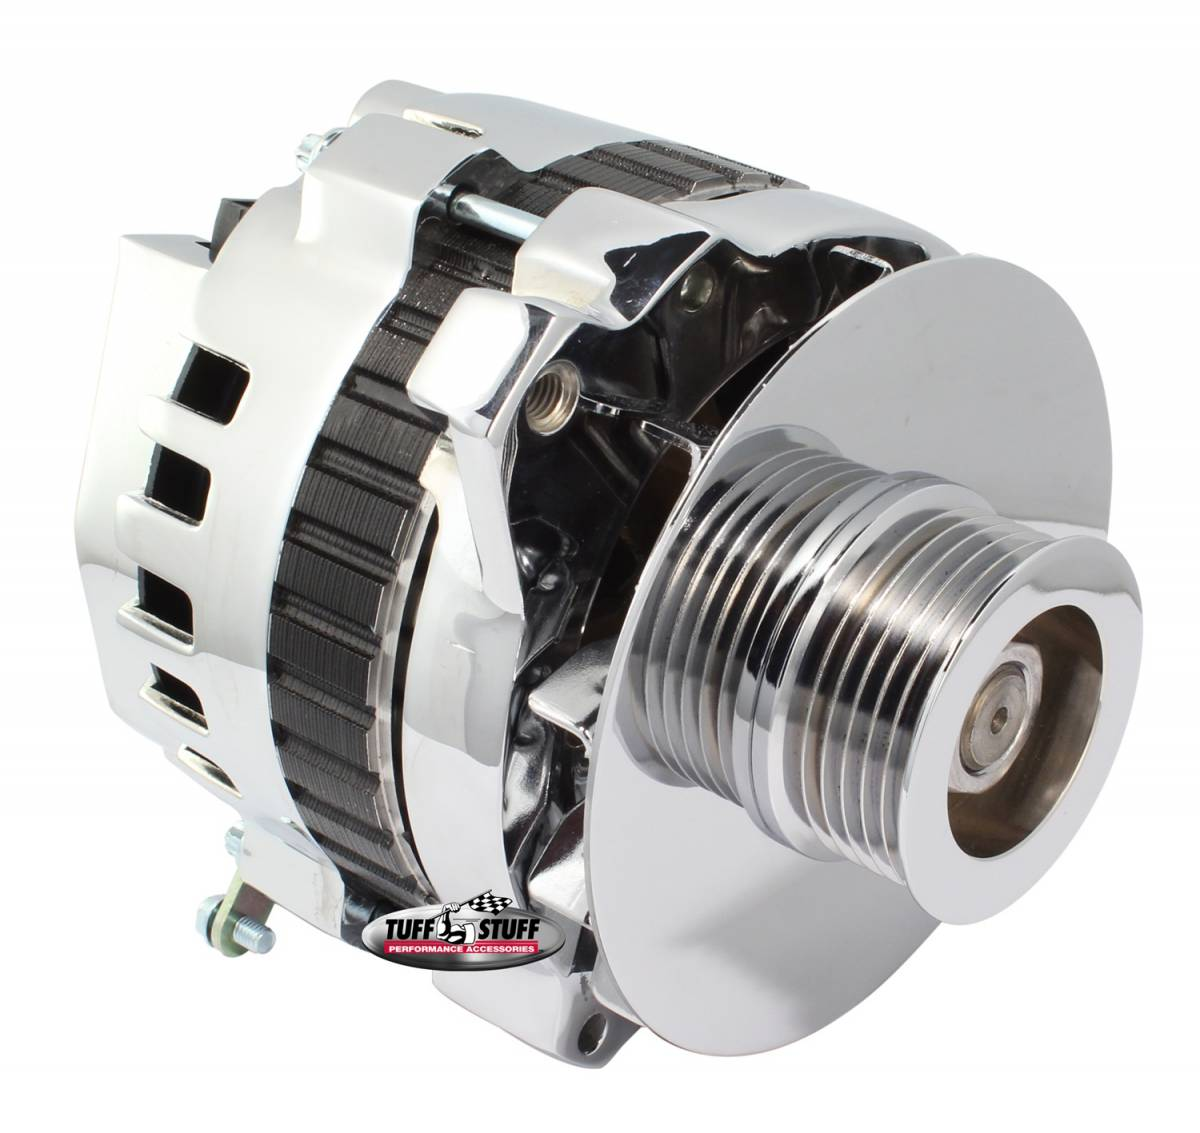 Tuff Stuff Performance - Alternator 105 AMP 1 Wire Or OEM 6 Groove Pulley 6.125 in. Bolt To Bolt Chrome 7866D6G